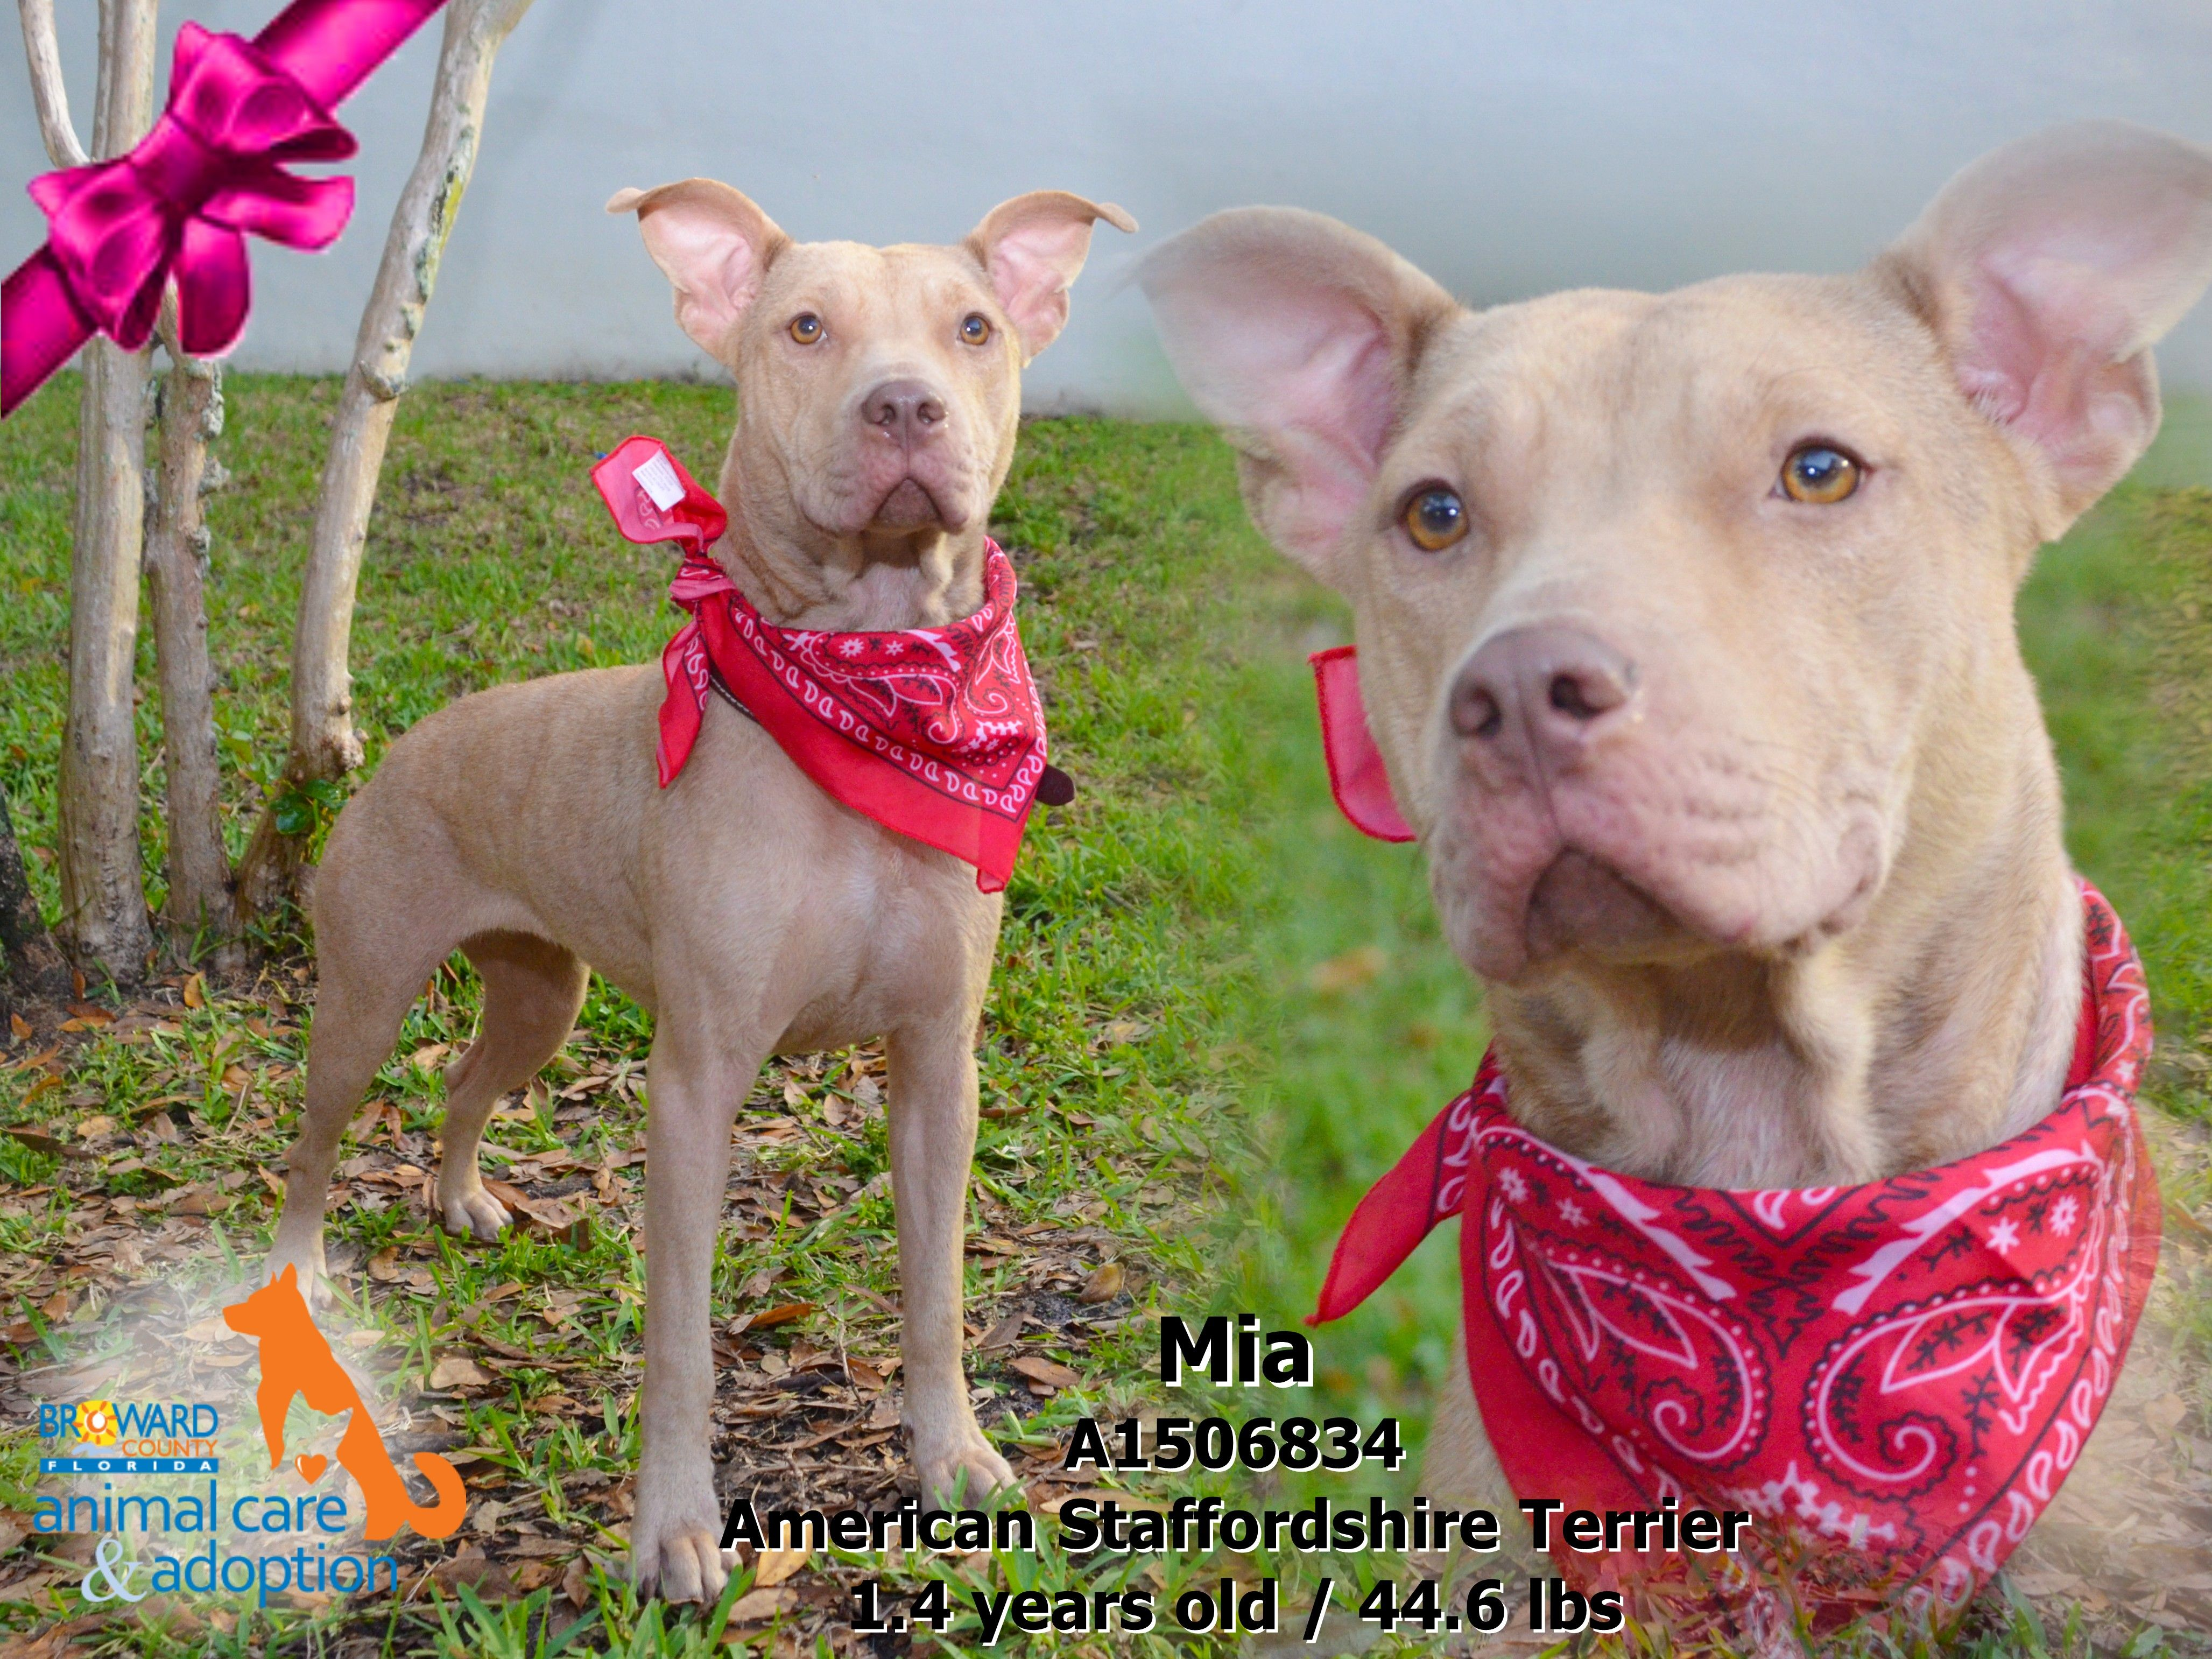 Hi, my name is Mia and I'm available for adoption at